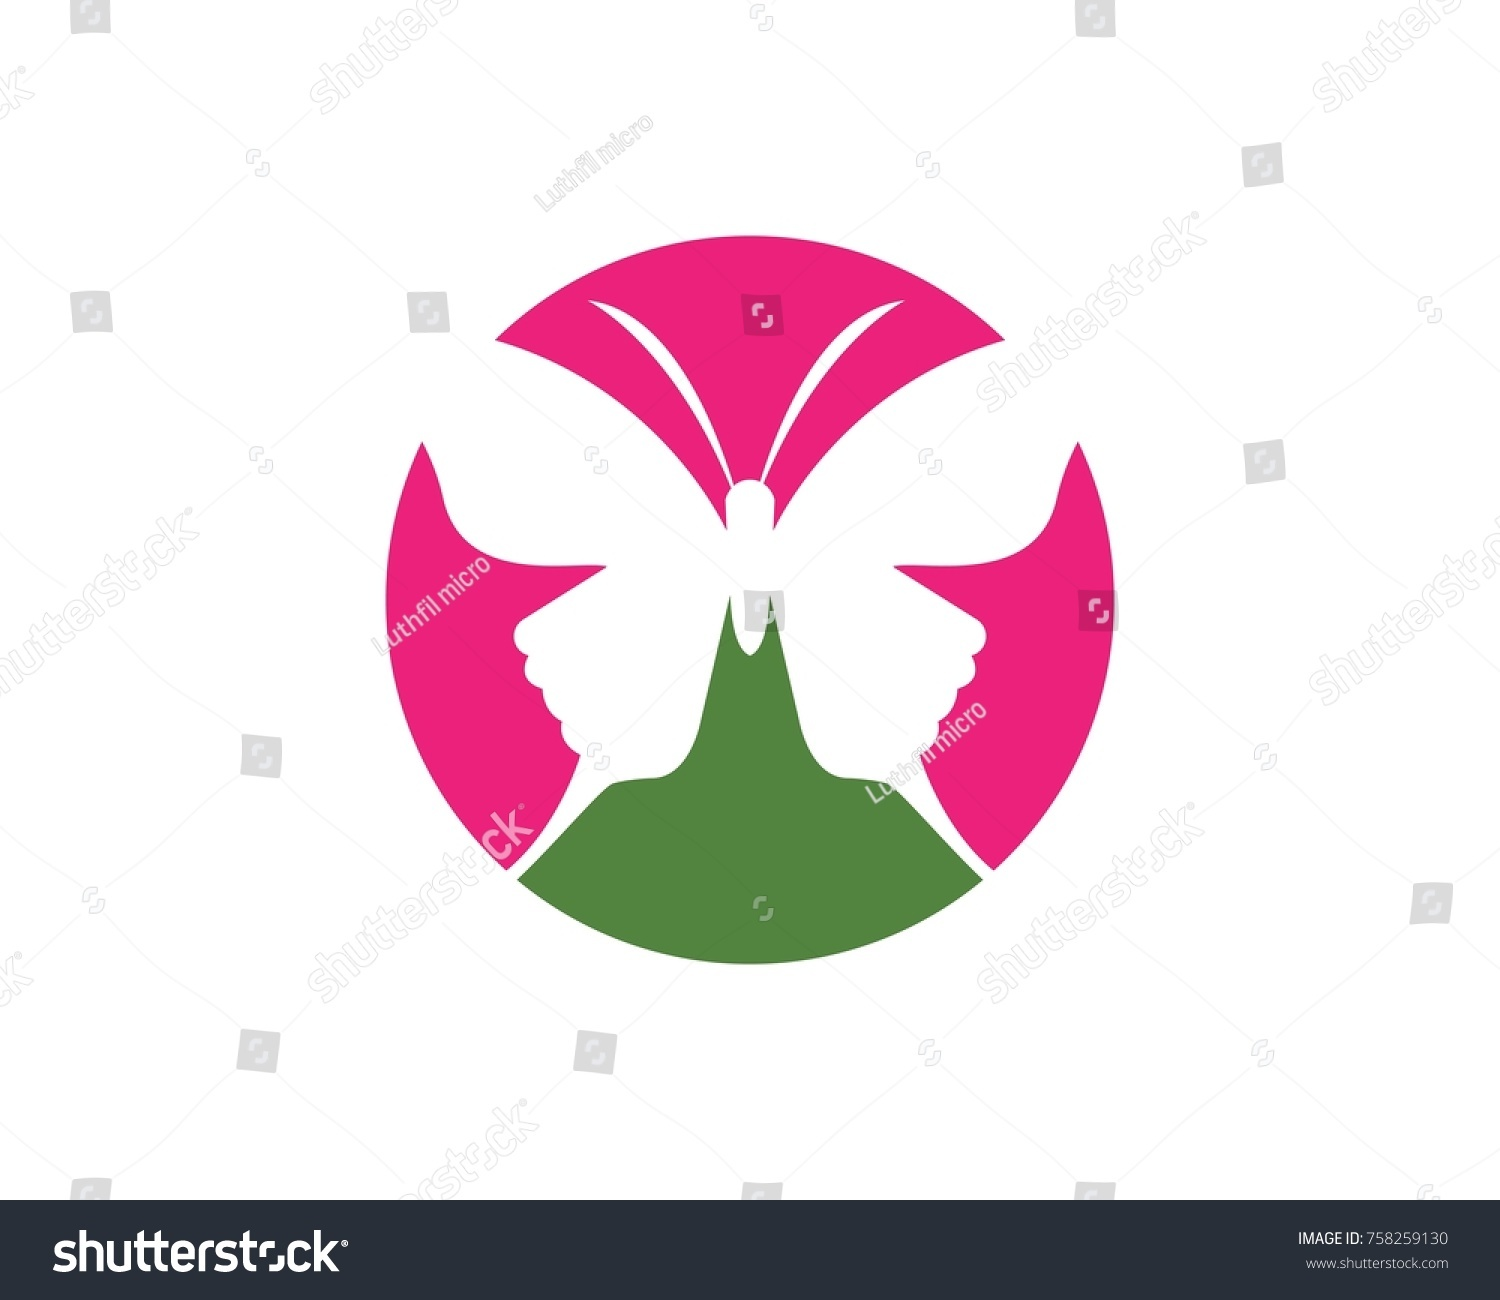 Butterfly logos symbol template stock vector 758259130 shutterstock butterfly logos symbol template biocorpaavc Image collections